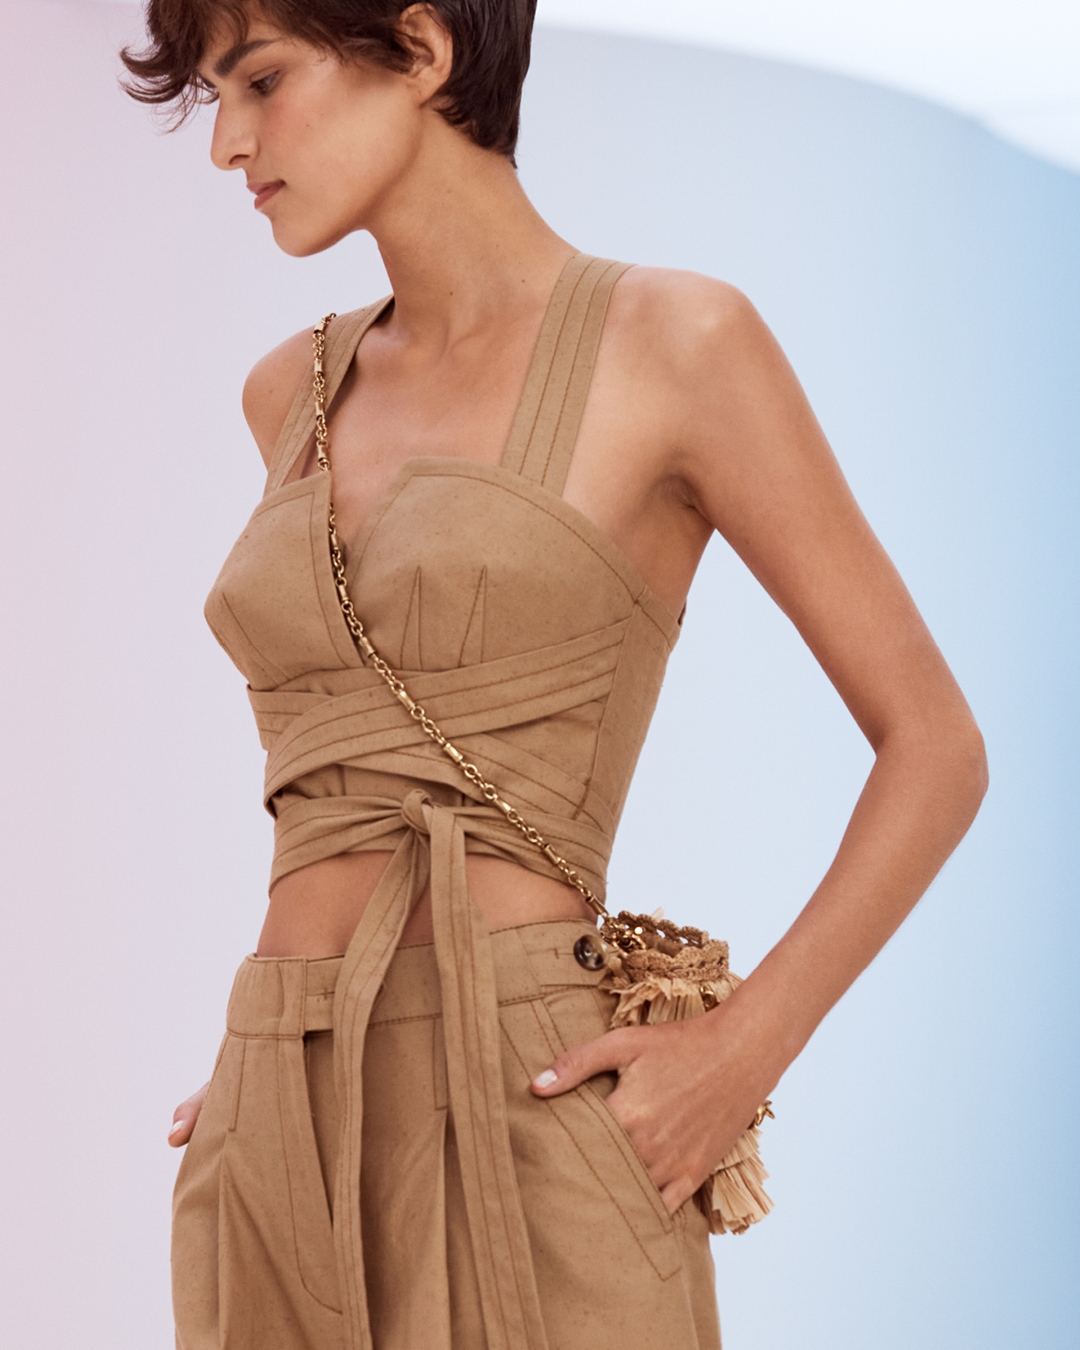 IN THE DETAIL: LOOK 11 RESORT READY TO WEAR 2022, THE POSTCARD